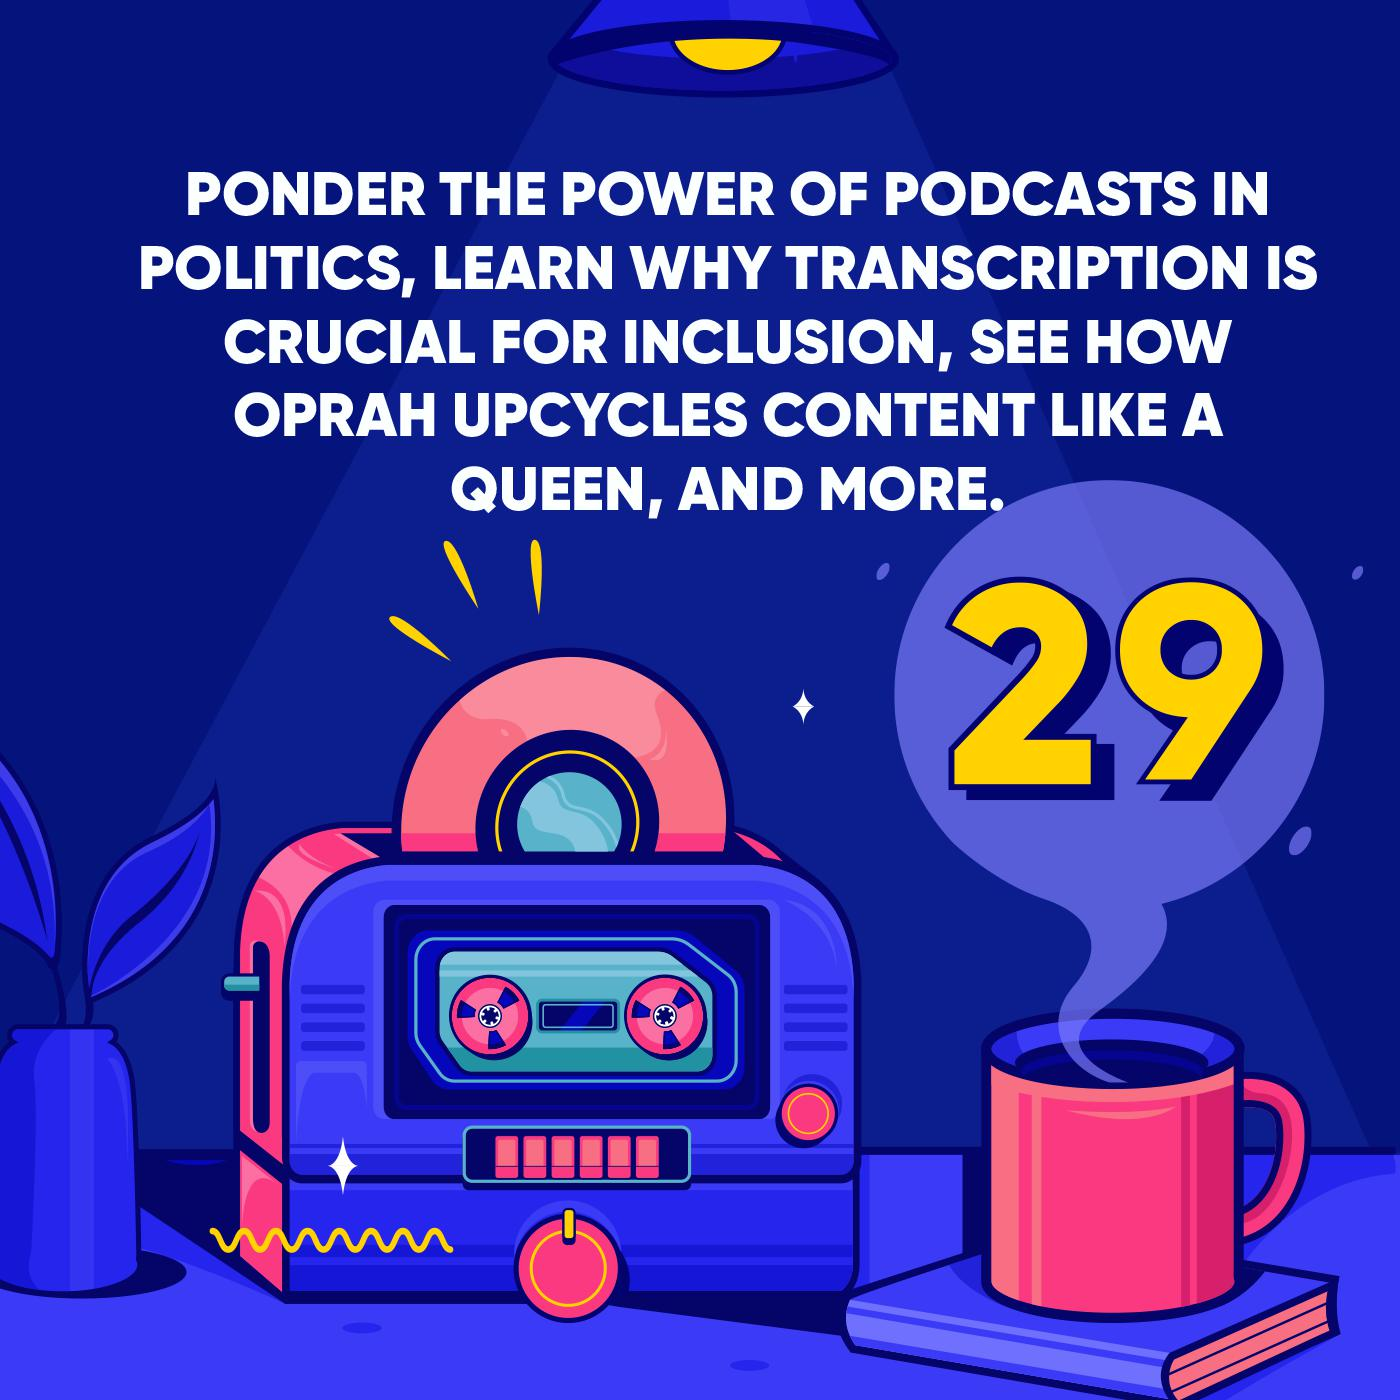 Ponder the Power of Podcasts in Politics, Learn why Transcription is Crucial for Inclusion, See how Oprah Upcycles Content like a Queen, and More.